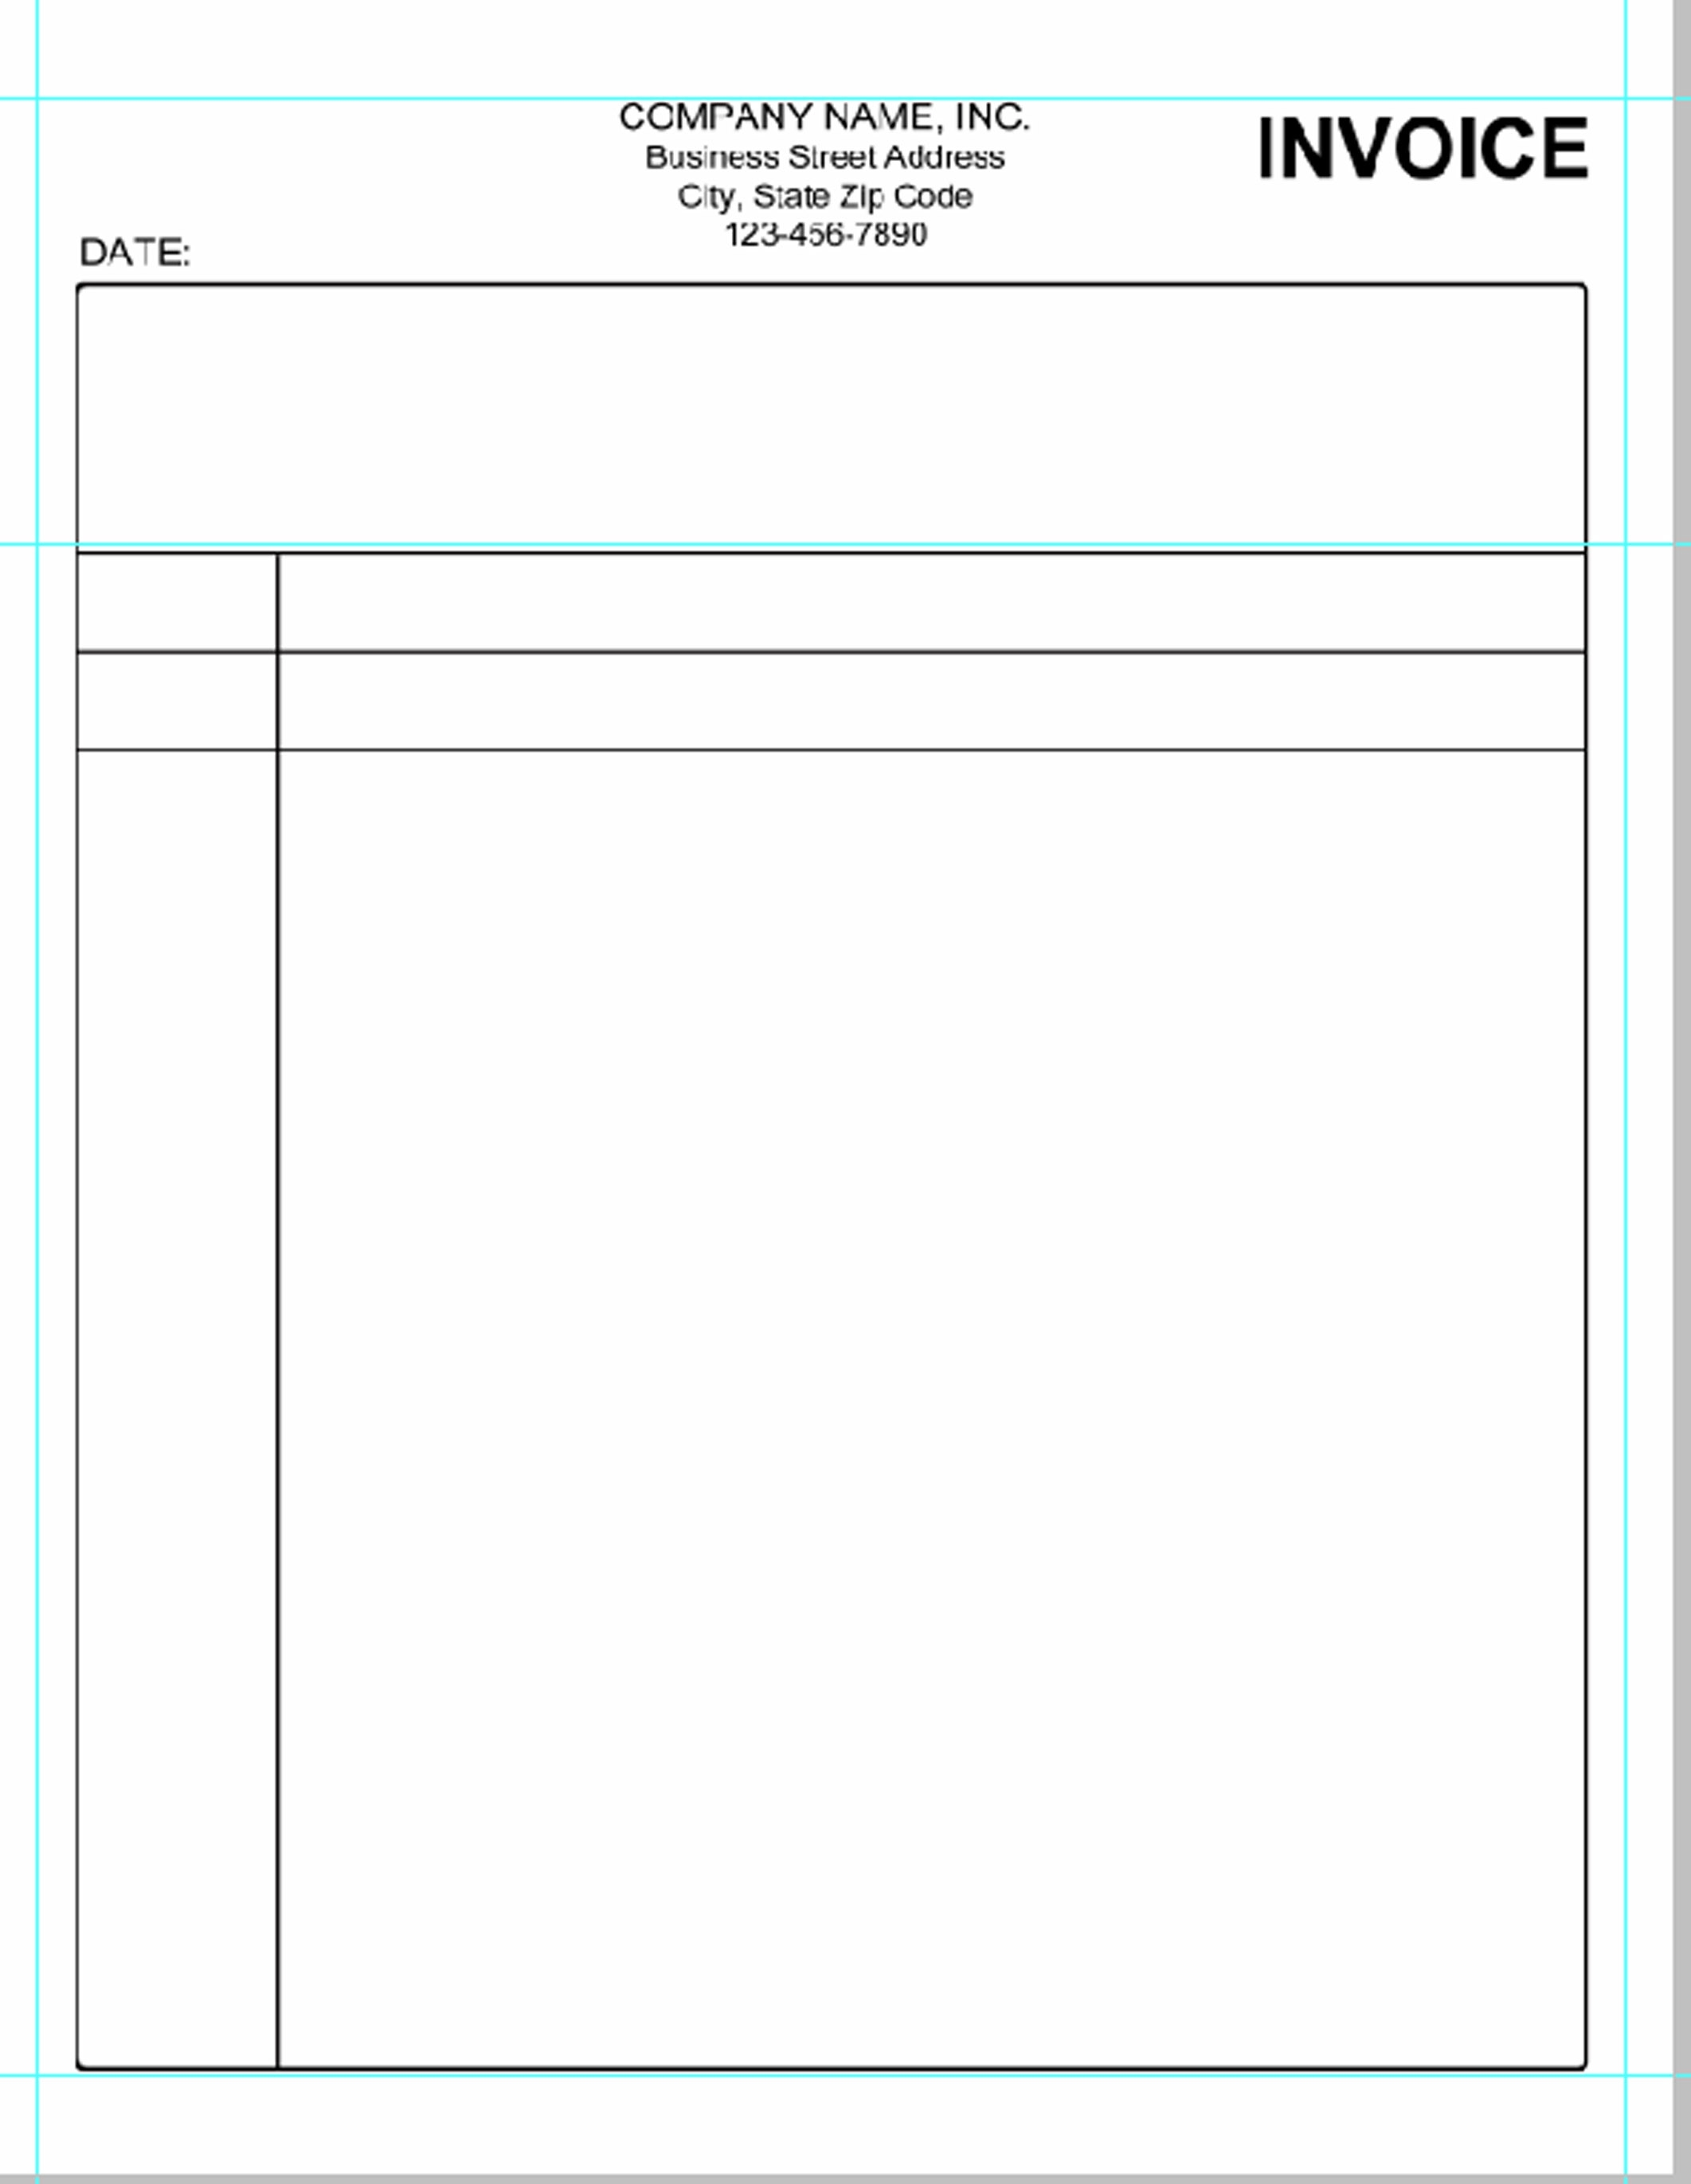 blank invoice template microsoft word invoice template free 2016 blank invoice template for microsoft word